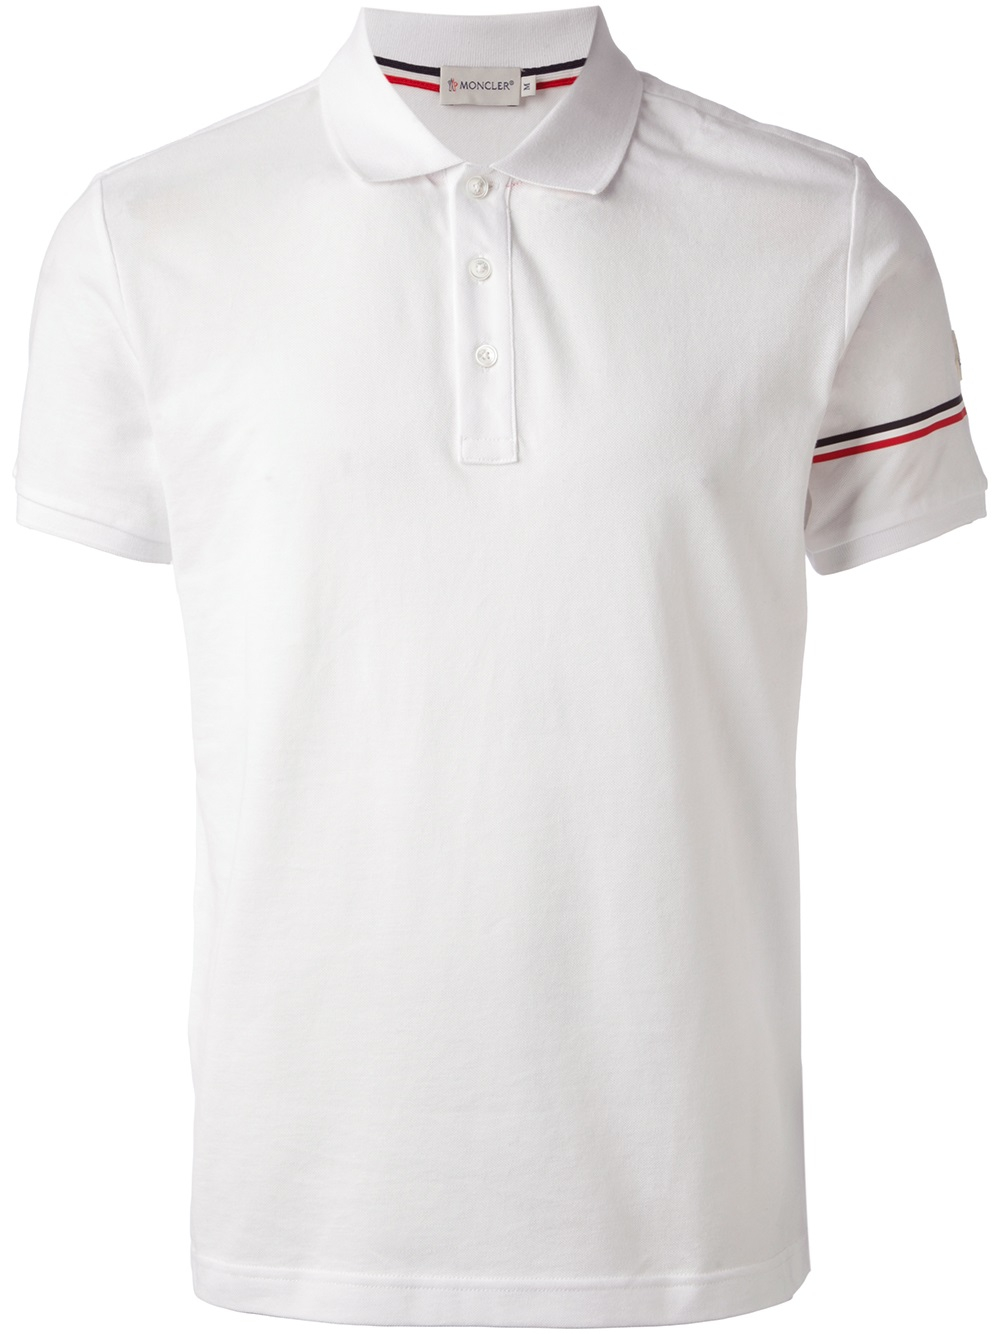 moncler polo shirt in white for men lyst. Black Bedroom Furniture Sets. Home Design Ideas